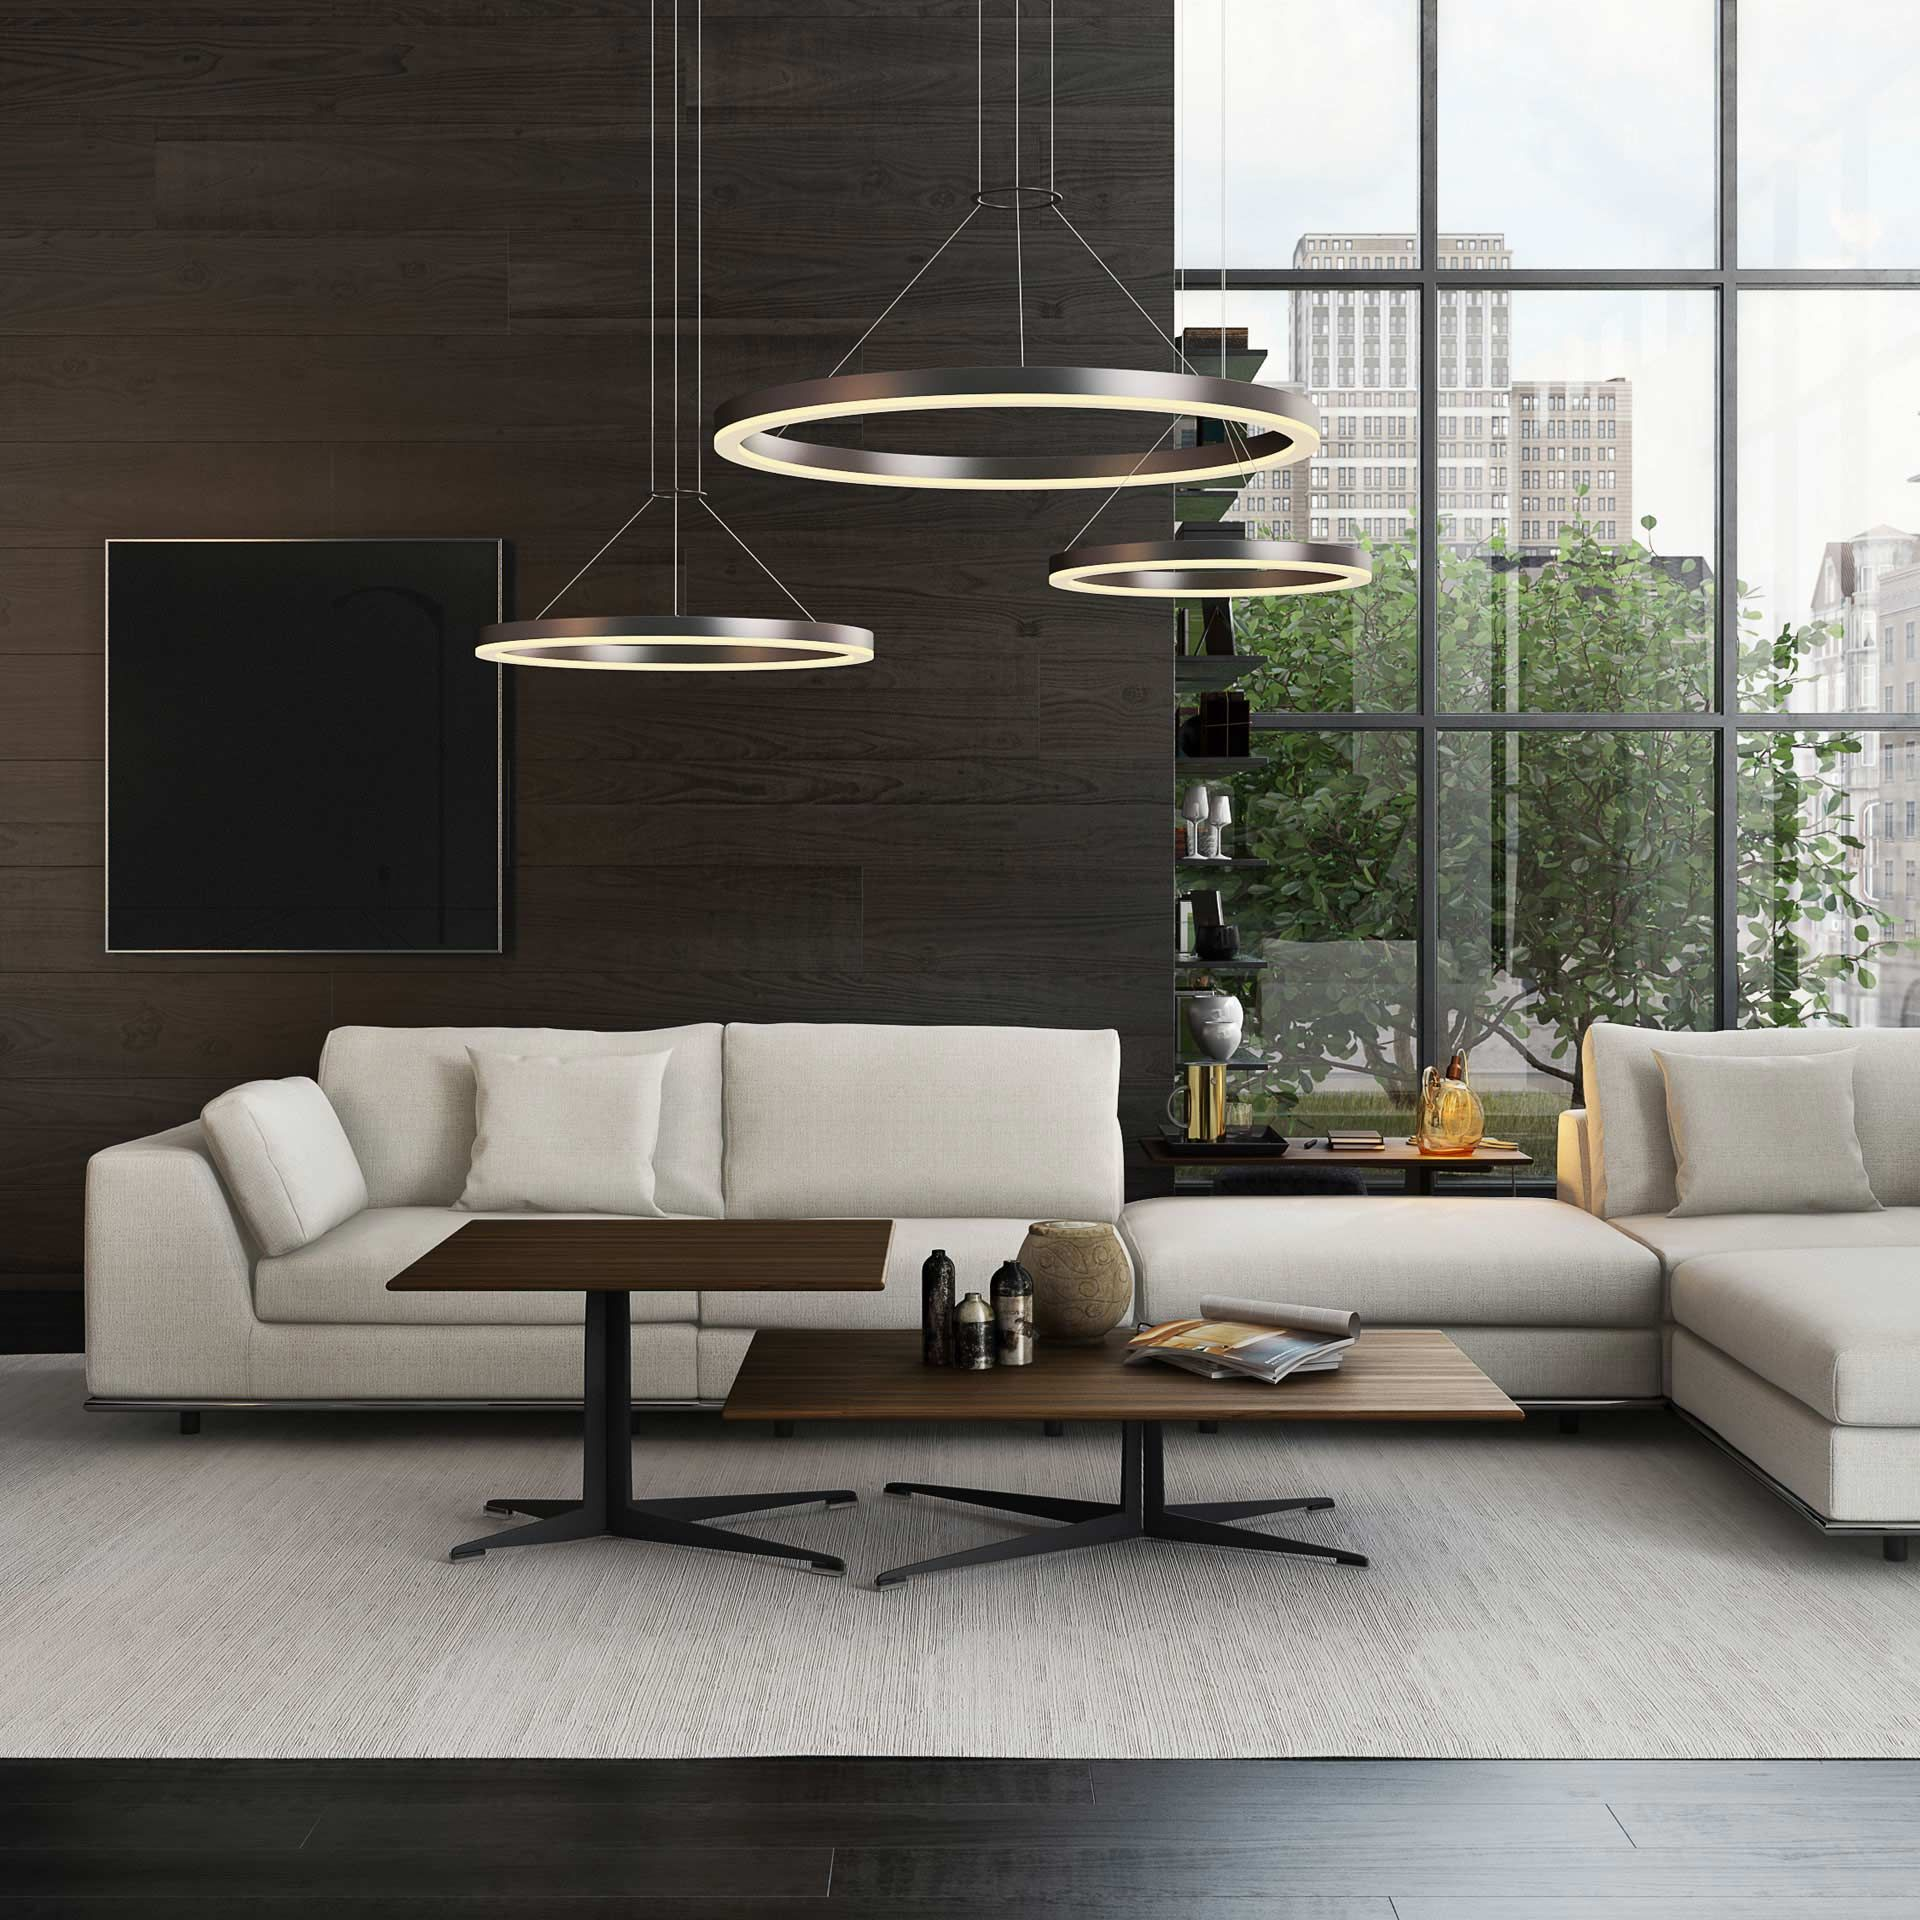 The Distinctive Hudson Coffee Tables Offer An Innovative Take On A